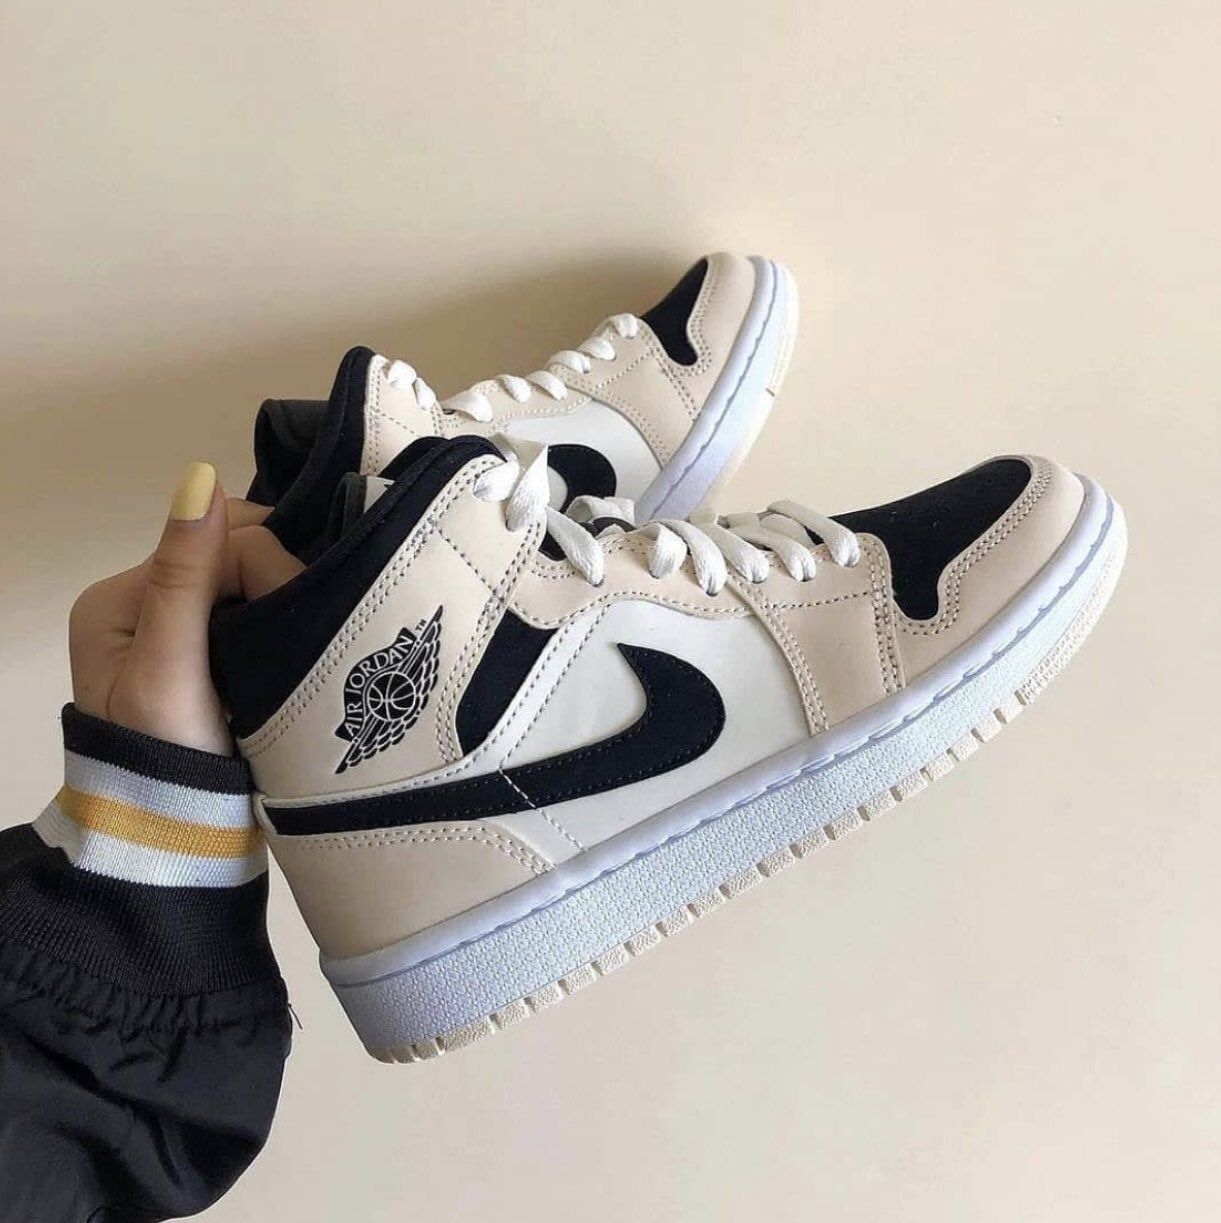 Buzzsnkr Com On Twitter In 2021 All Nike Shoes Swag Shoes Sneakers Fashion